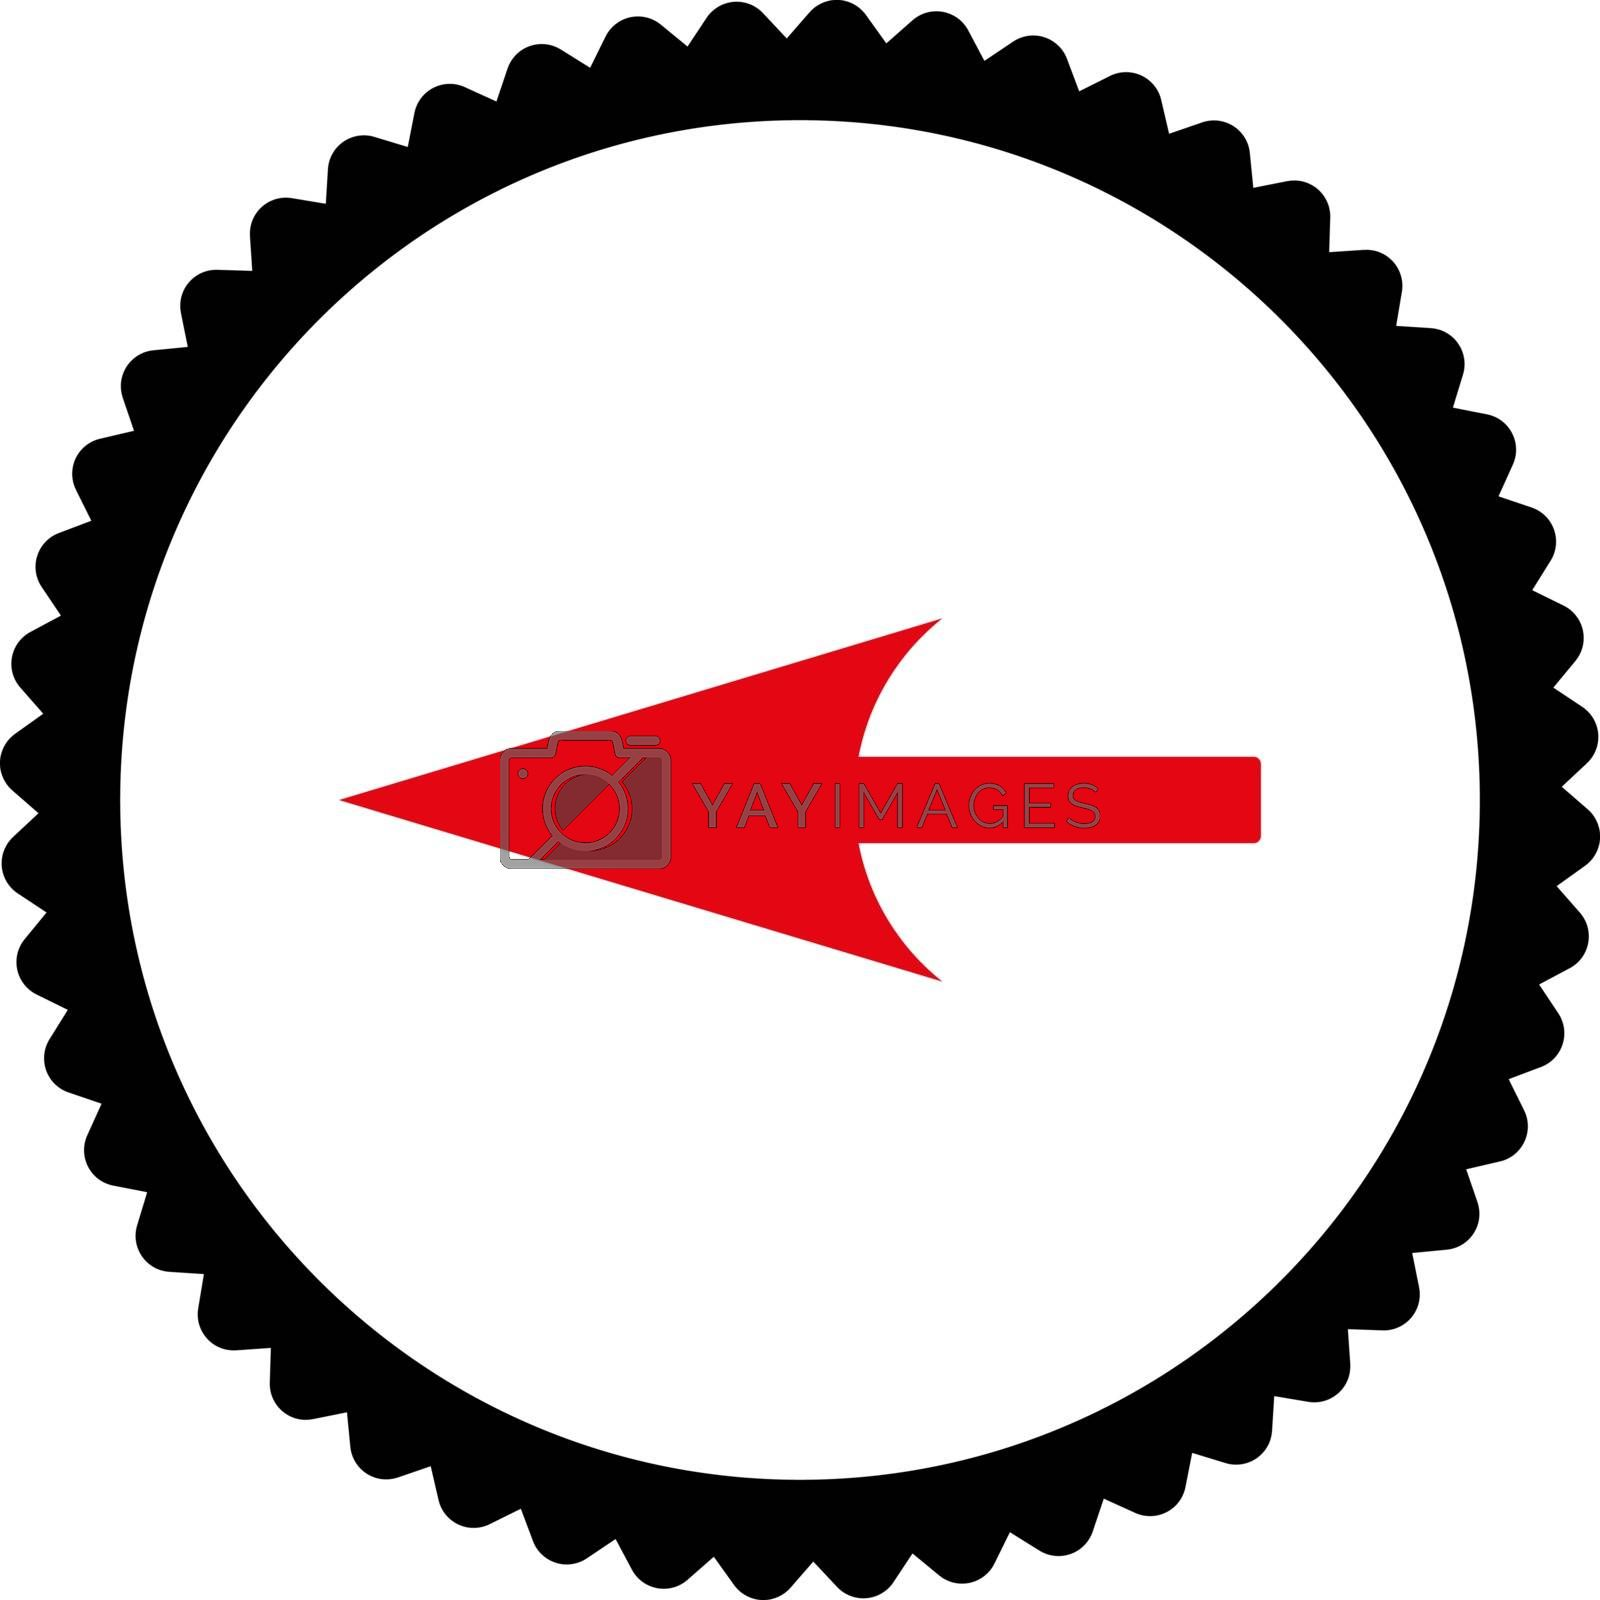 Sharp Left Arrow flat intensive red and black colors round stamp icon by Aha-Soft